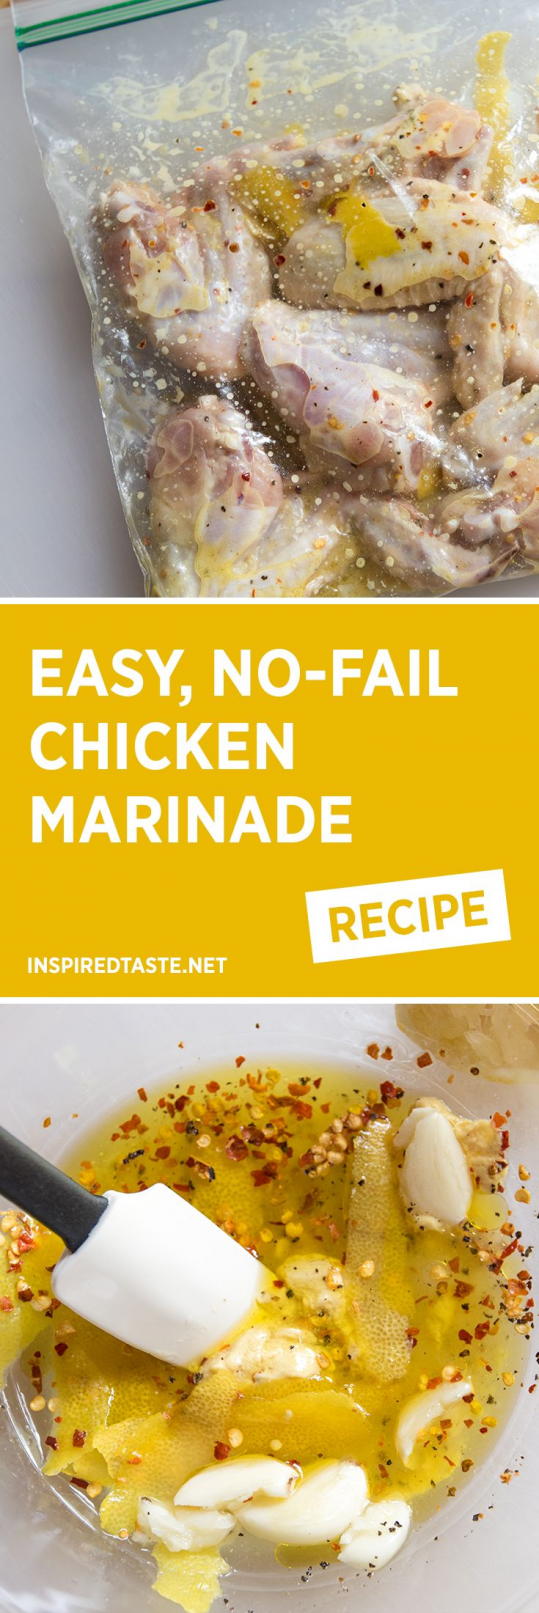 If youre on the lookout for a simple no-fail chicken ...